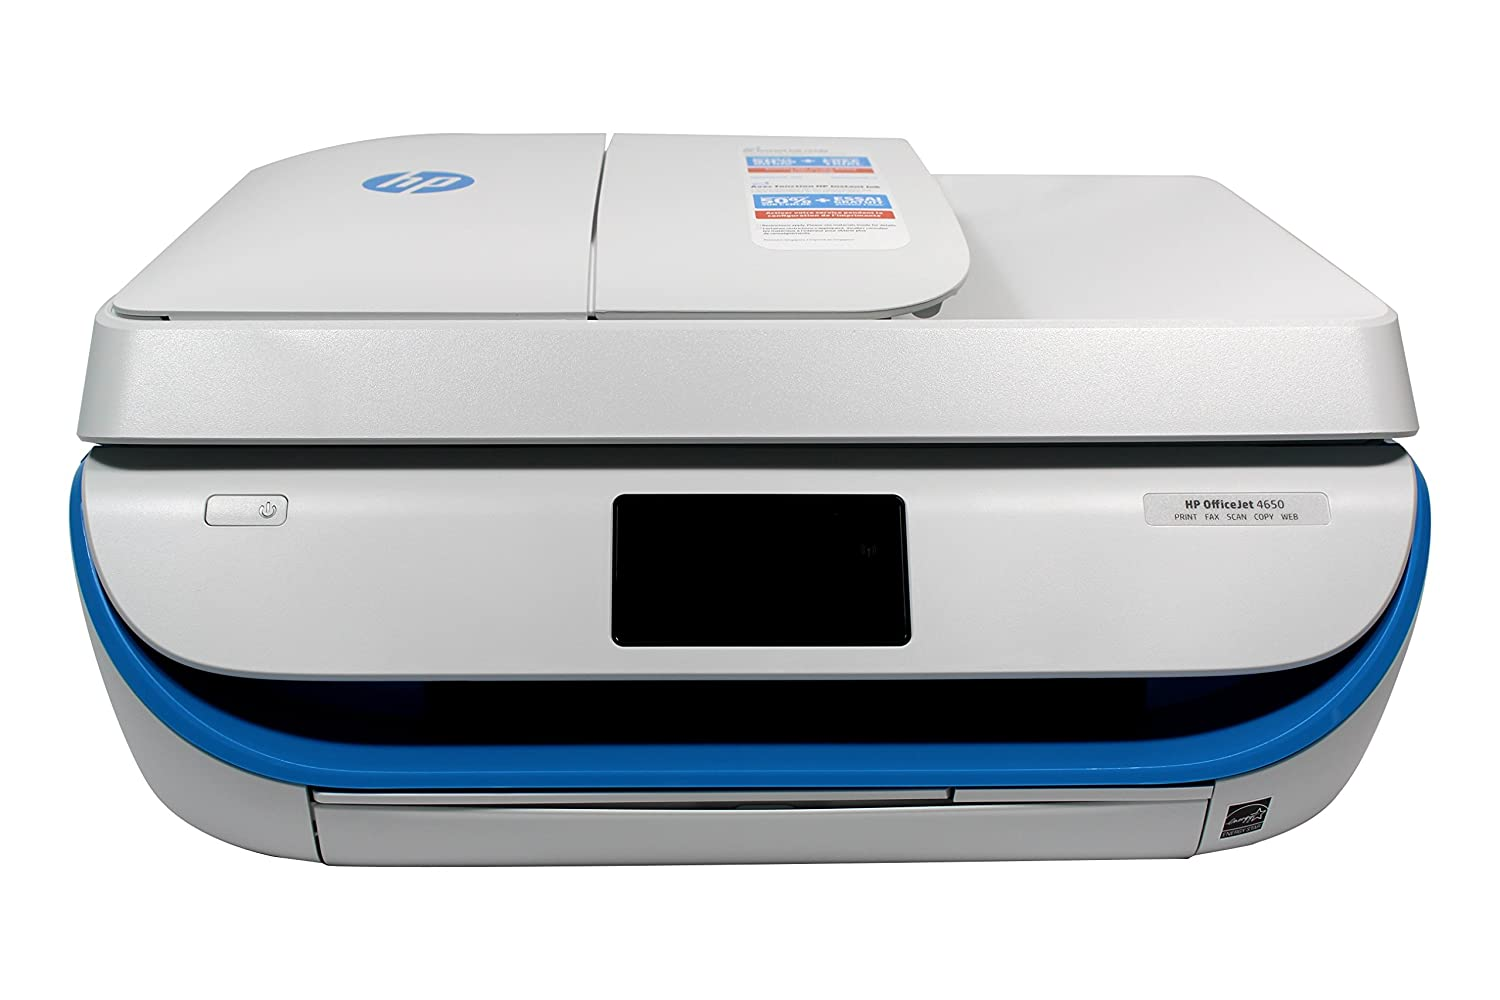 11 Best All-in-One Printers (AIO) for Home & Office in 2019